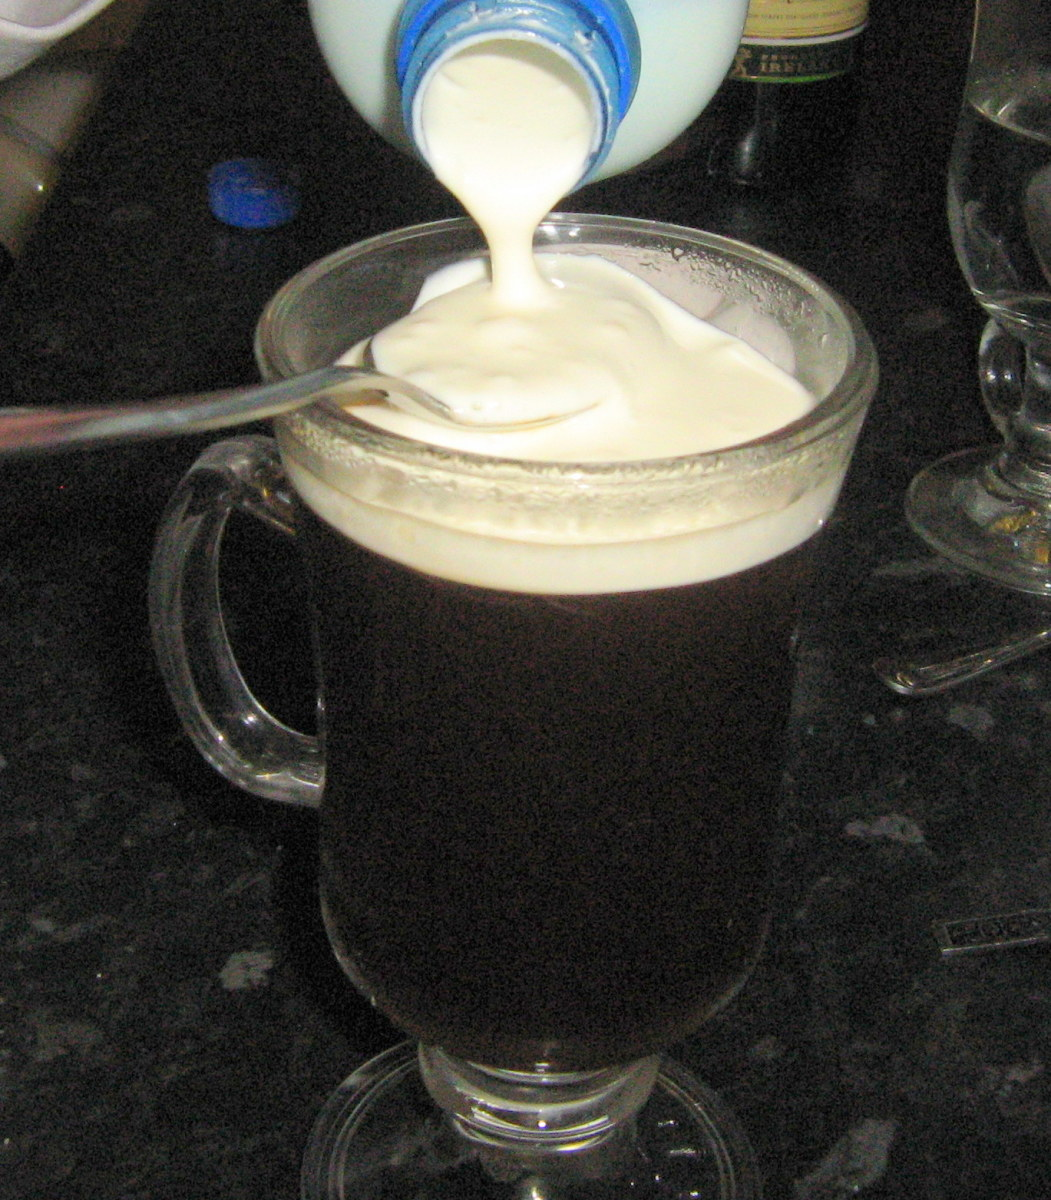 Slowly pour the cream onto the slightly angled spoon. Let the cream fall off the spoon into the glass and it will not sink.